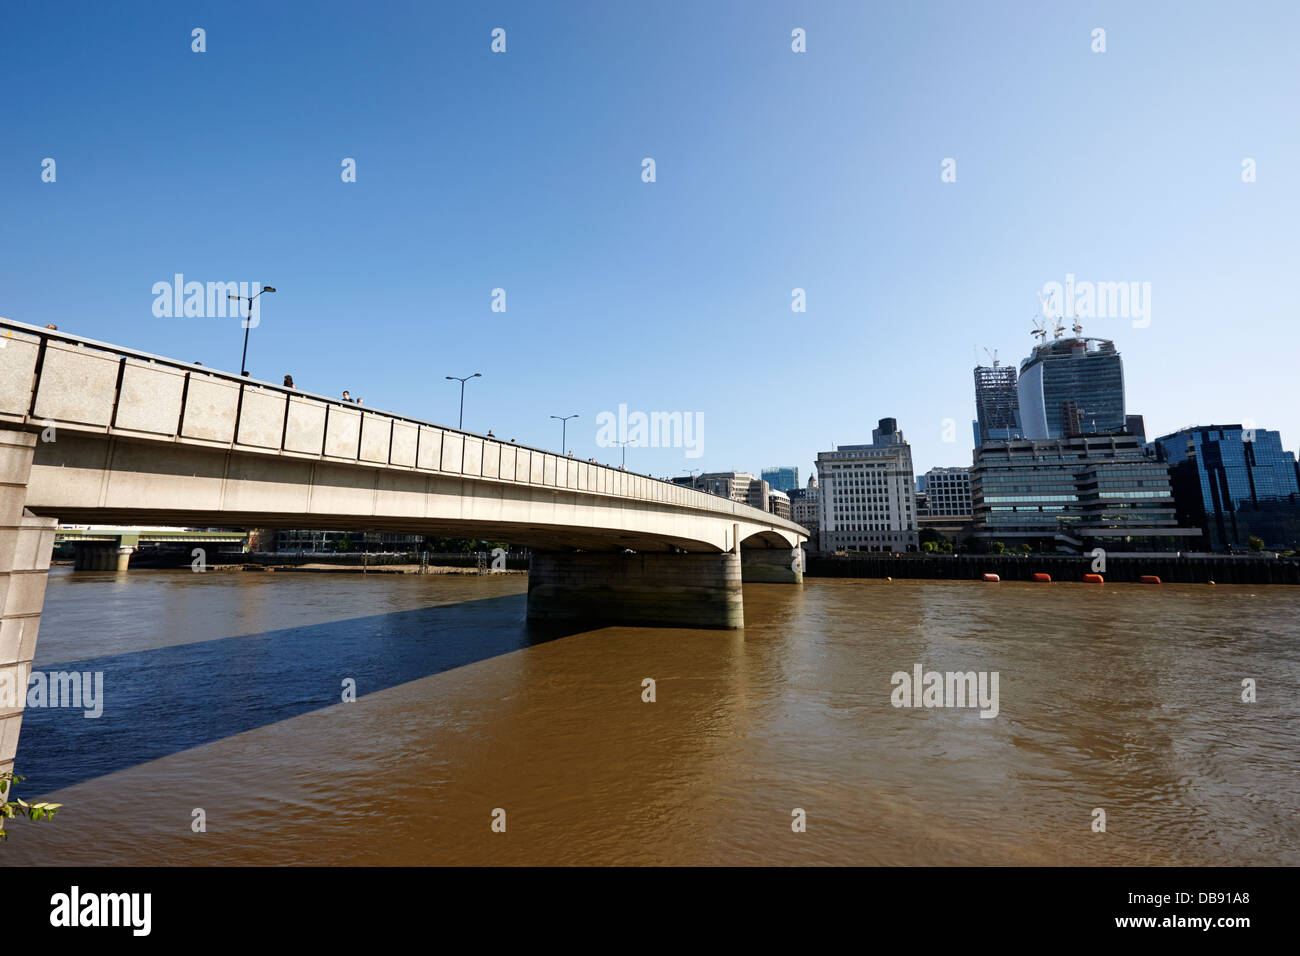 london bridge over the river thames leading to the city central London England UK Stock Photo